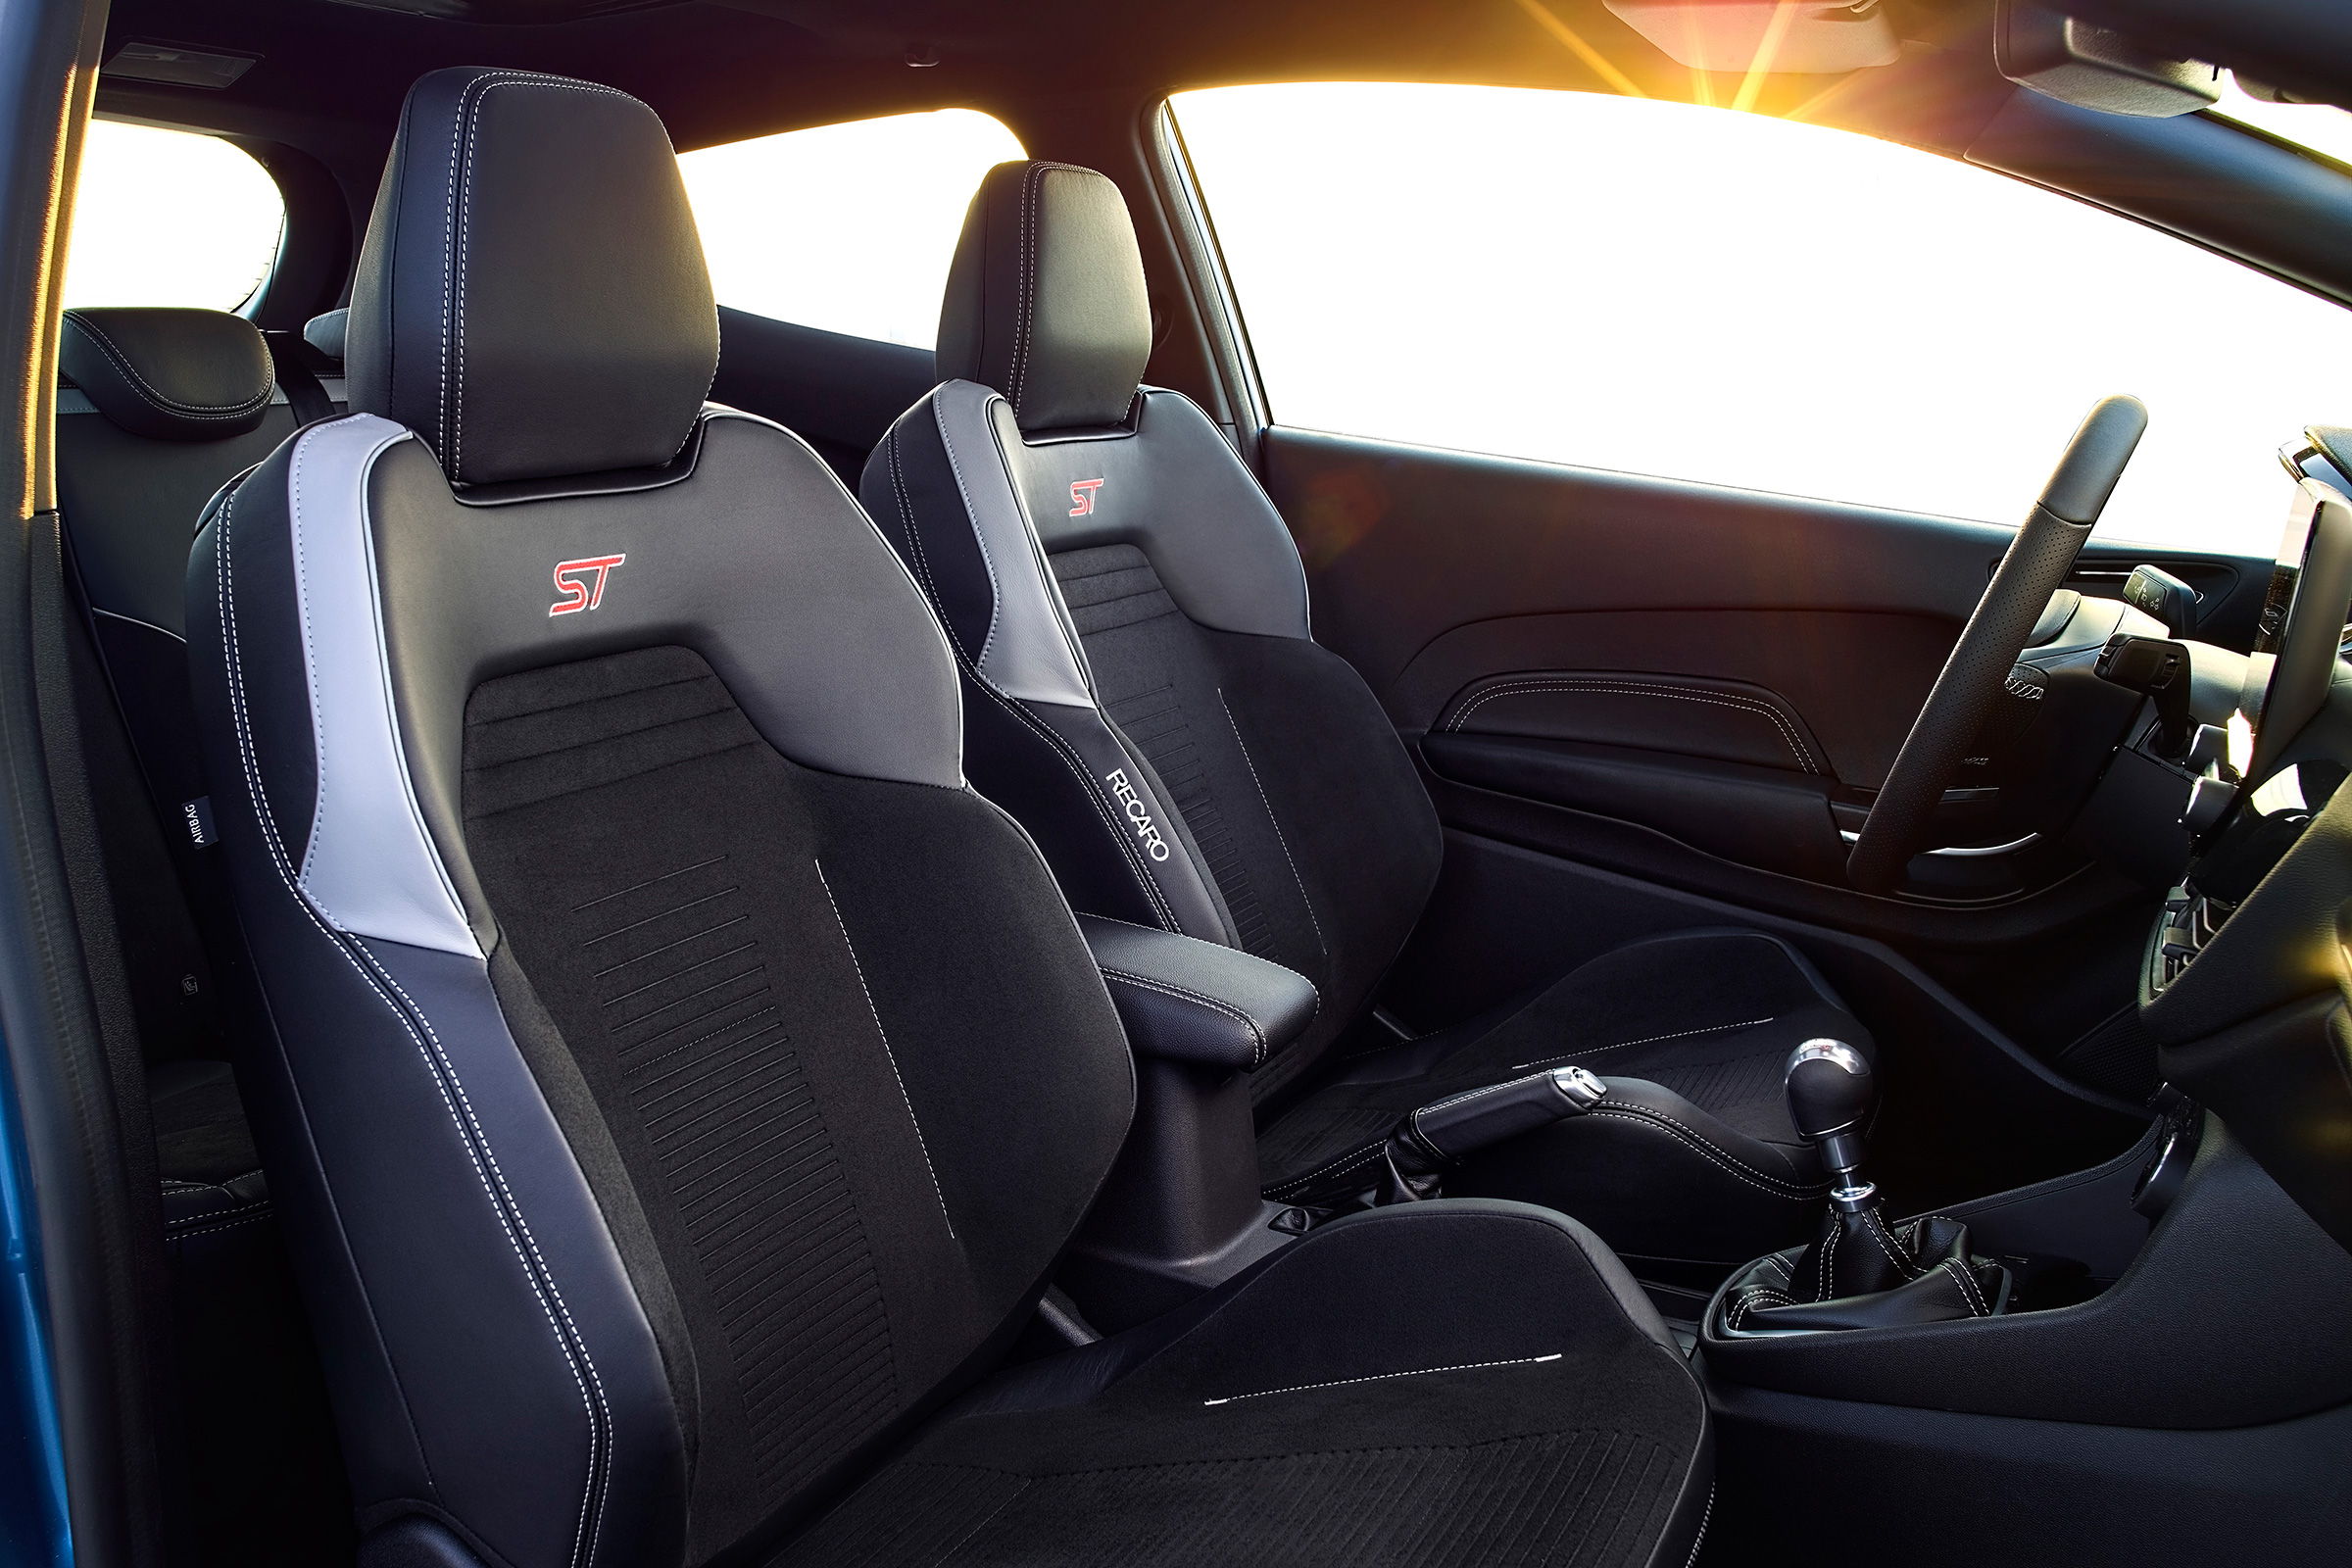 2018 Ford Fiesta ST Interior Seats Front (Photo 12 of 14)